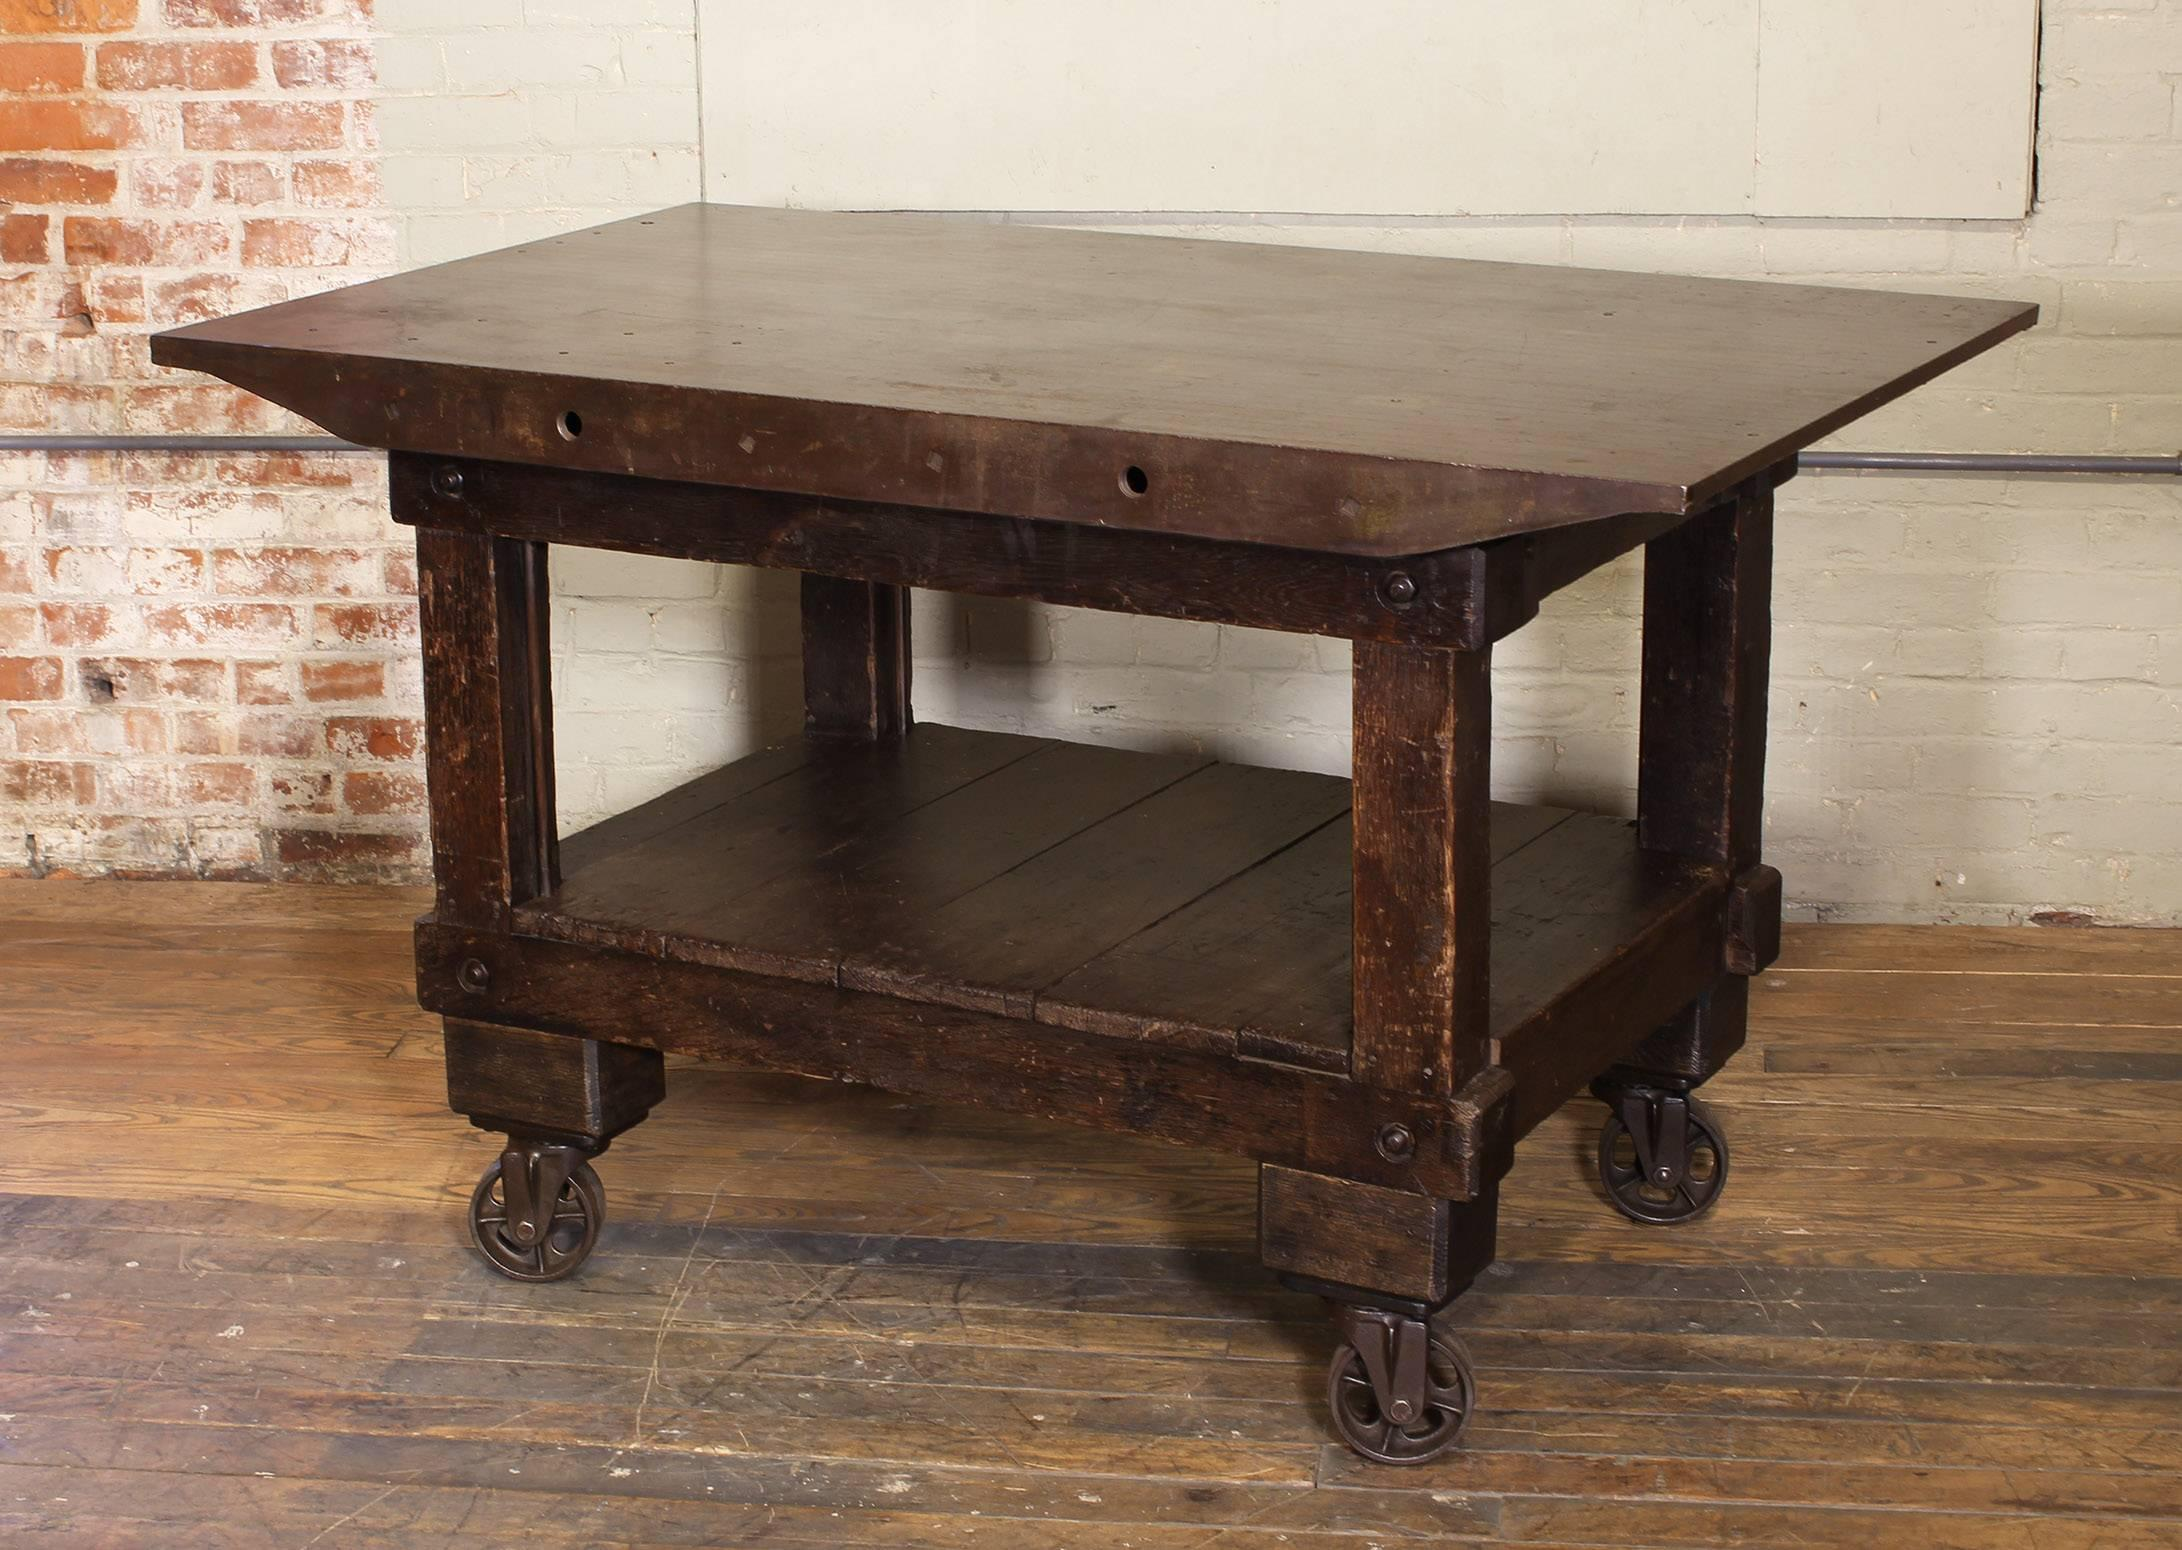 Vintage Industrial Rolling Kitchen Island / Table. Made Of Cast Iron, Steel  And Wood